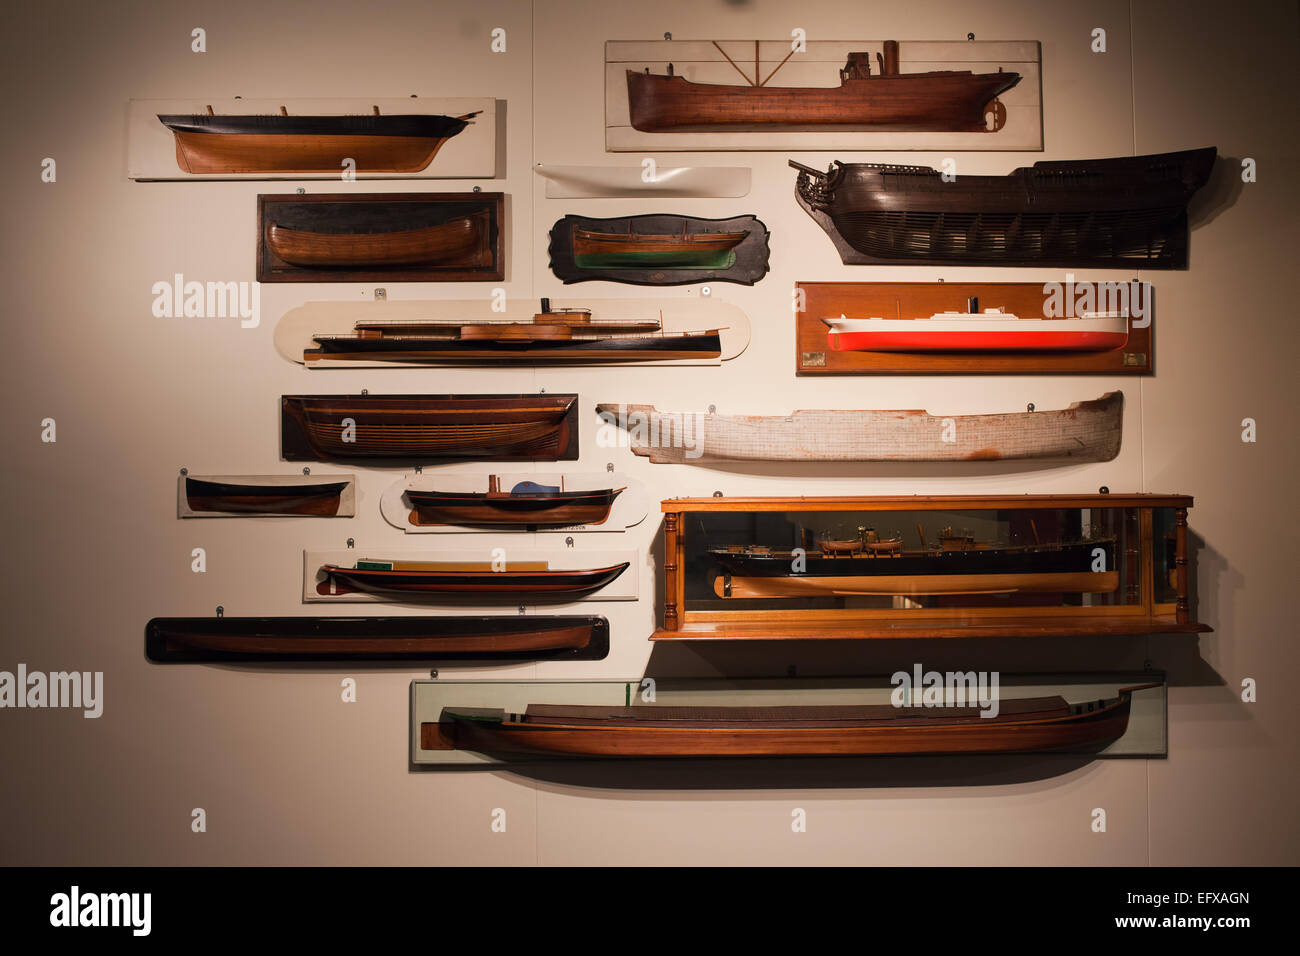 Ship and barges models in Maritime Museum in Rotterdam, Holland, Netherlands. - Stock Image